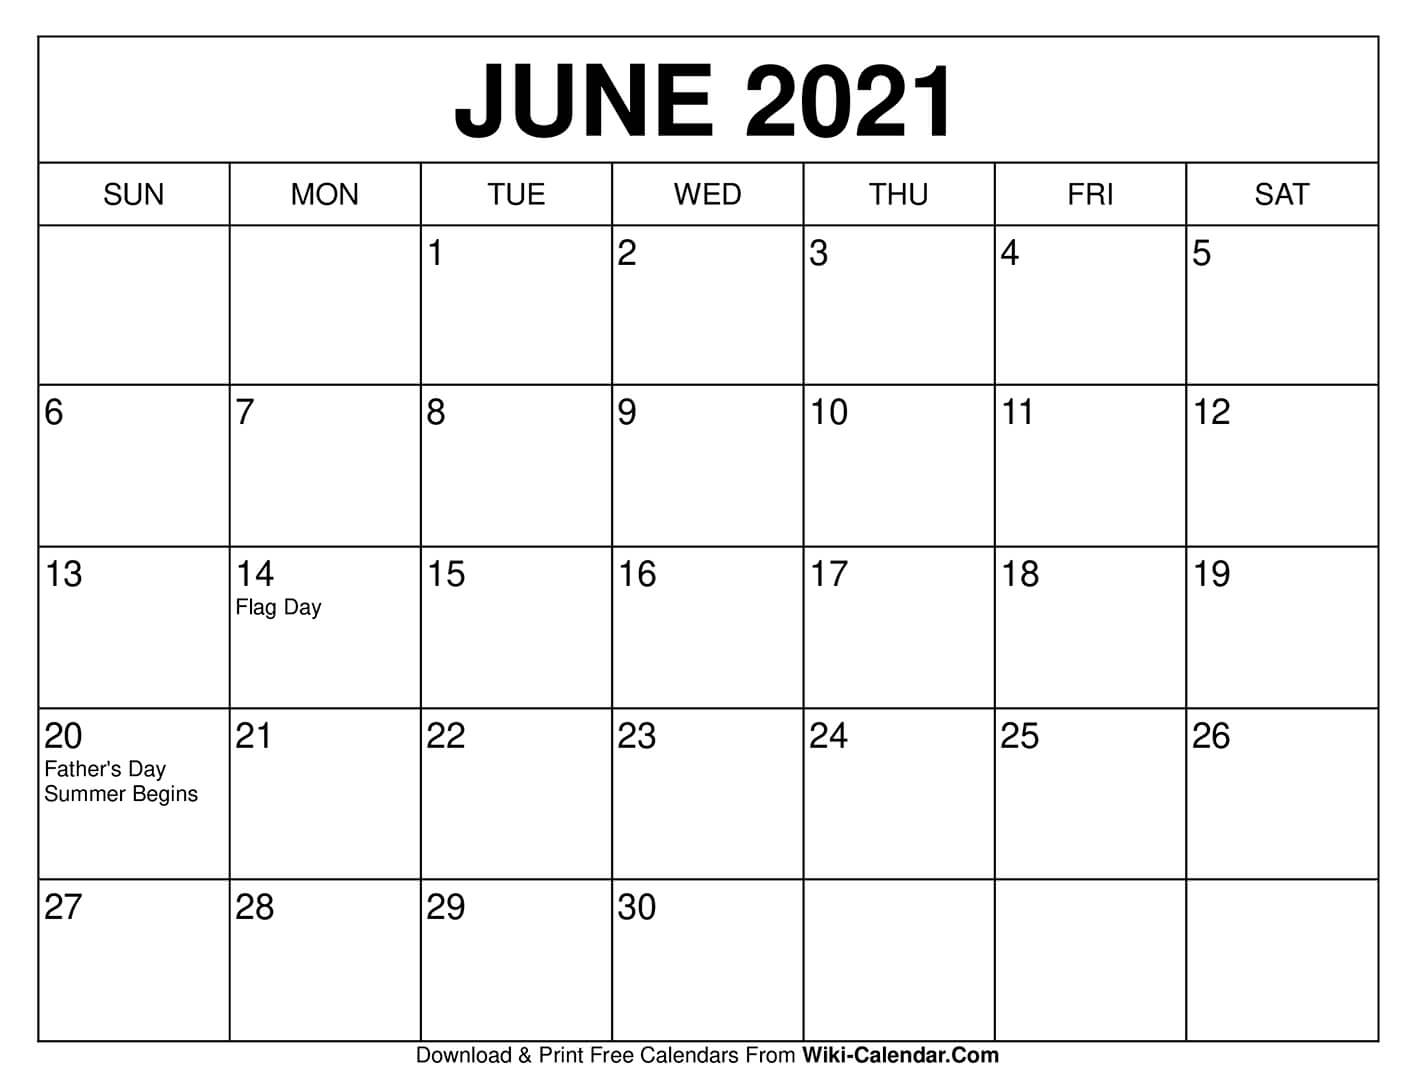 June Calendar Template 2021 Pictures